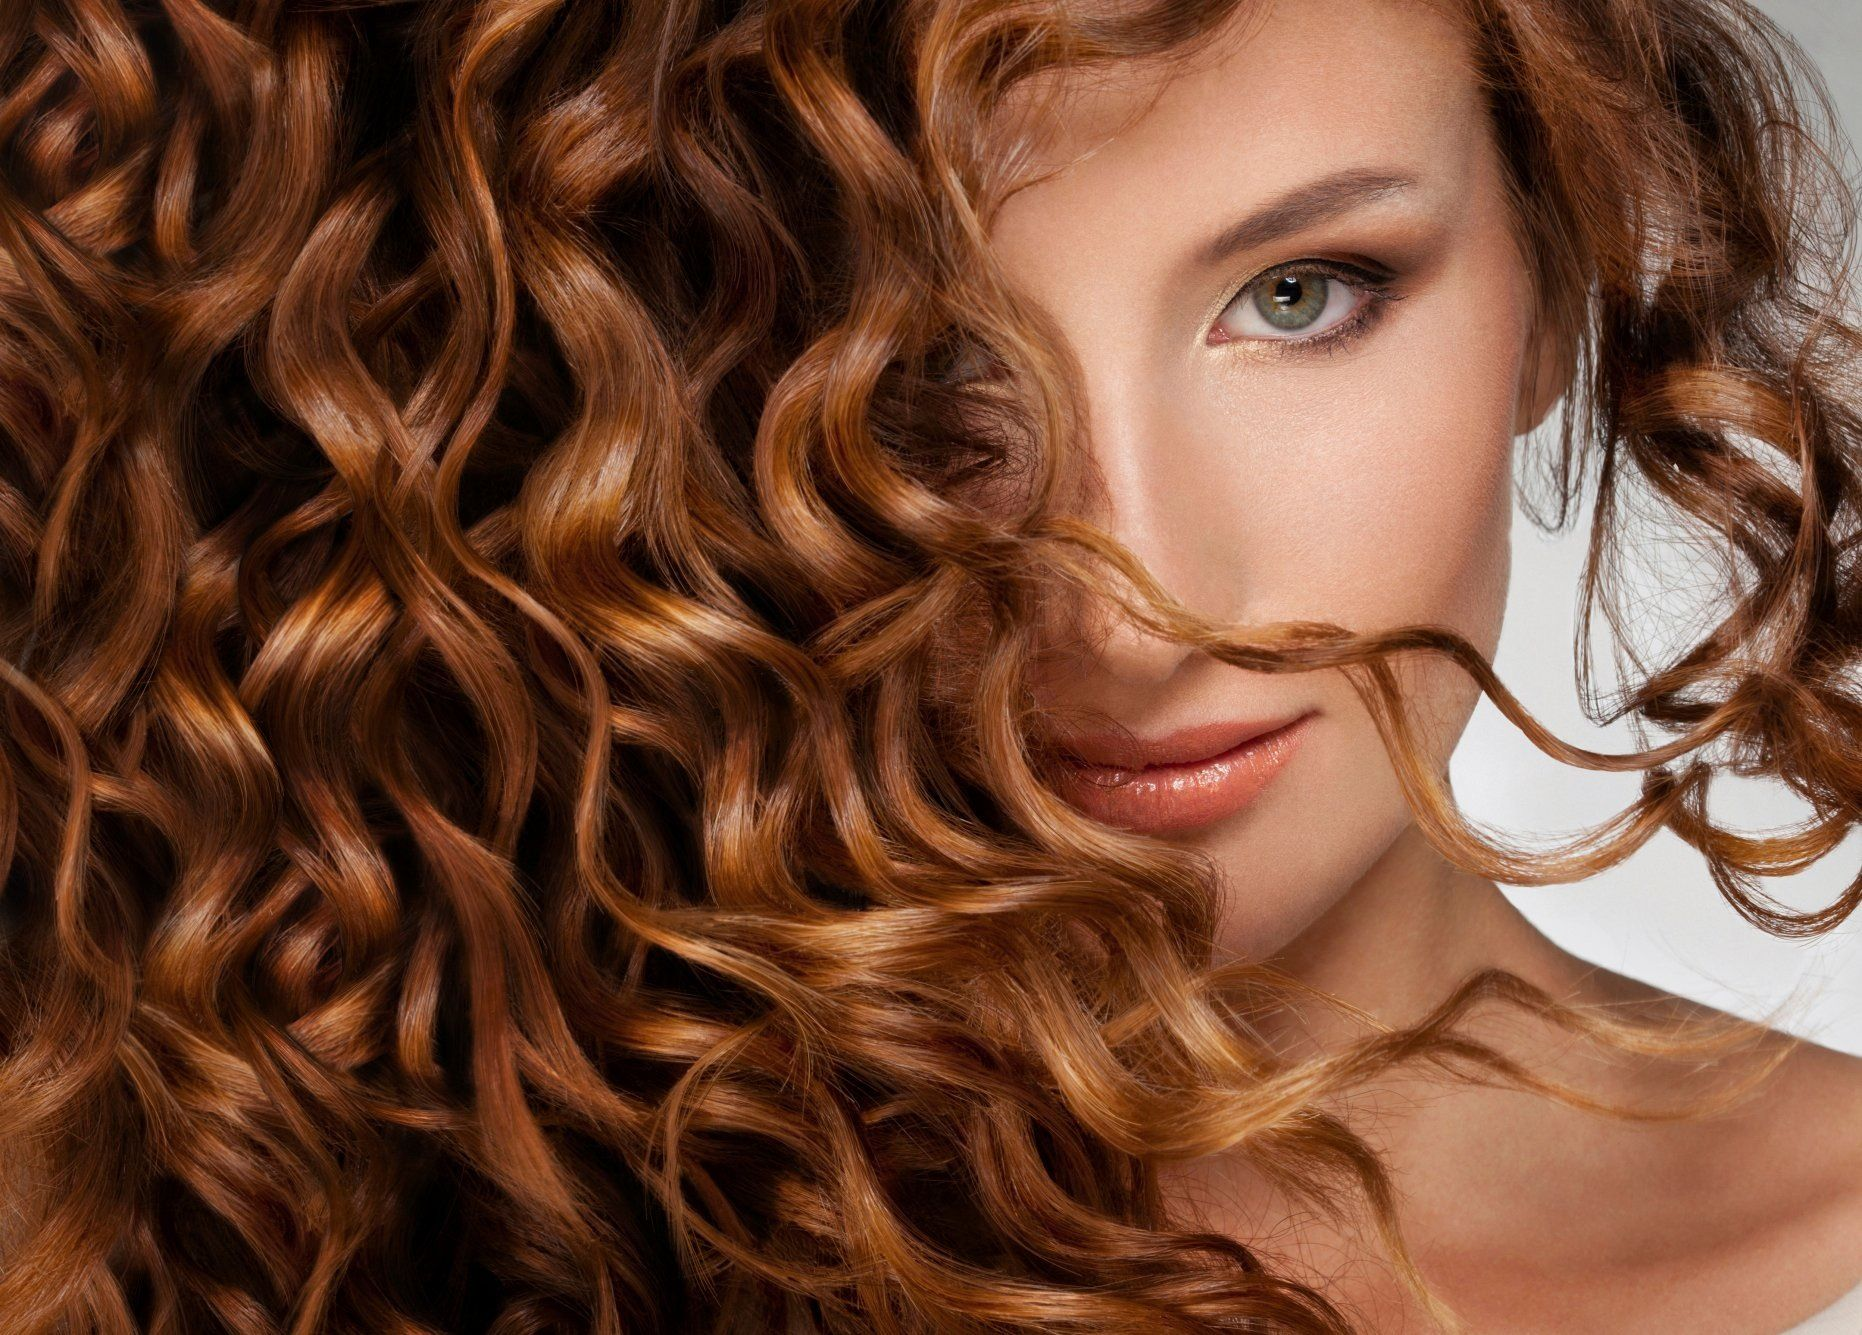 Straight perm for curly hair - Cute Types Of Perm For Long Hair If You Have Long Fine Tresses You May Be Willing To Add Some Body To Them By Getting A Perm